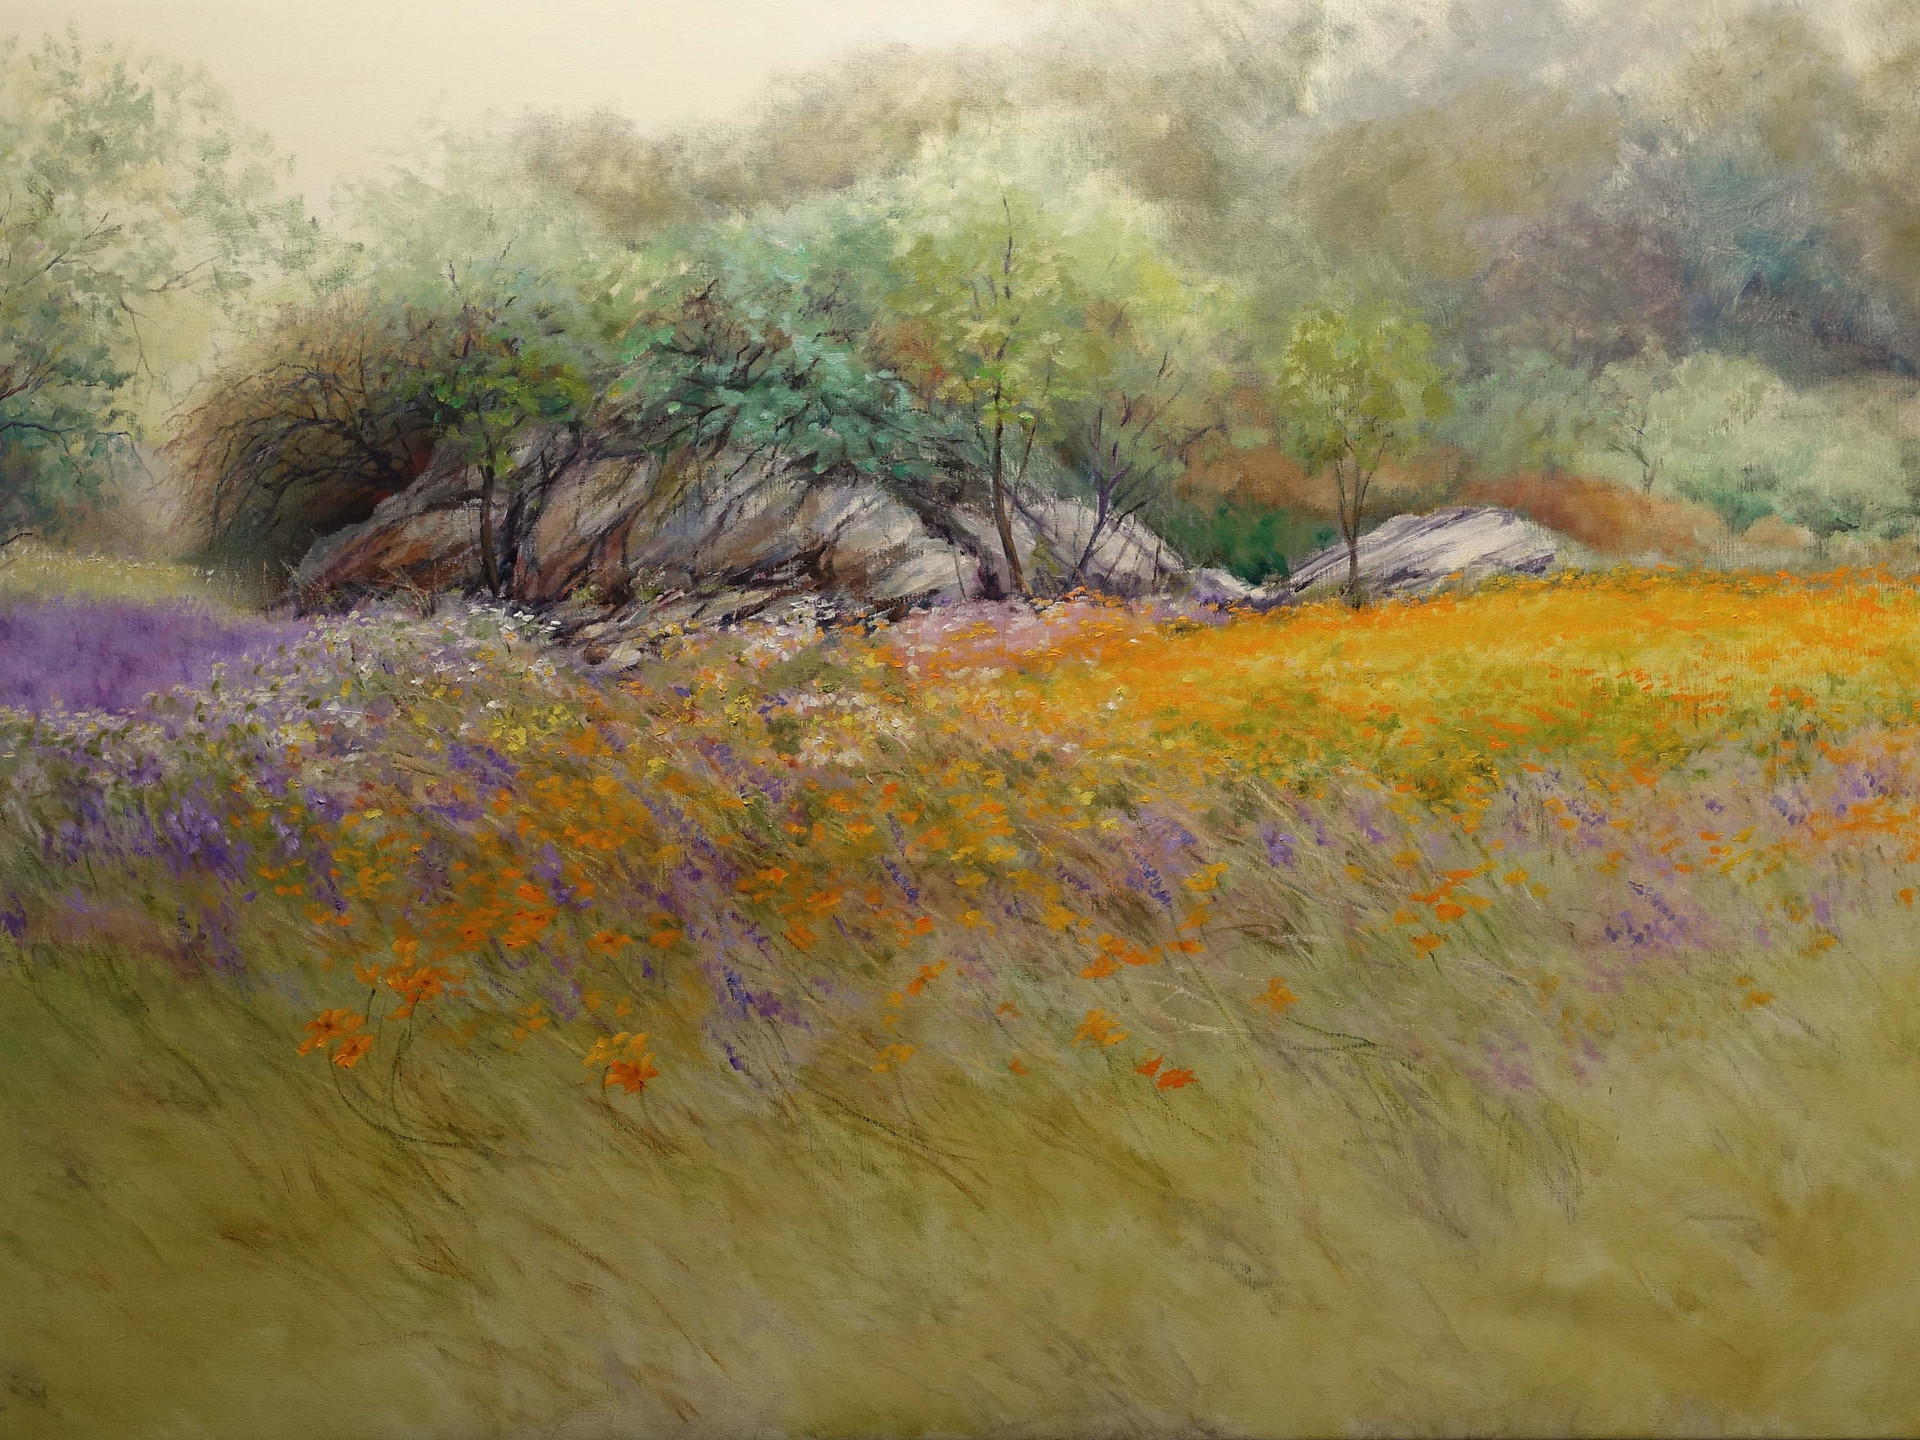 Namaqualand  flowers in the desert (1) 160x90 cm